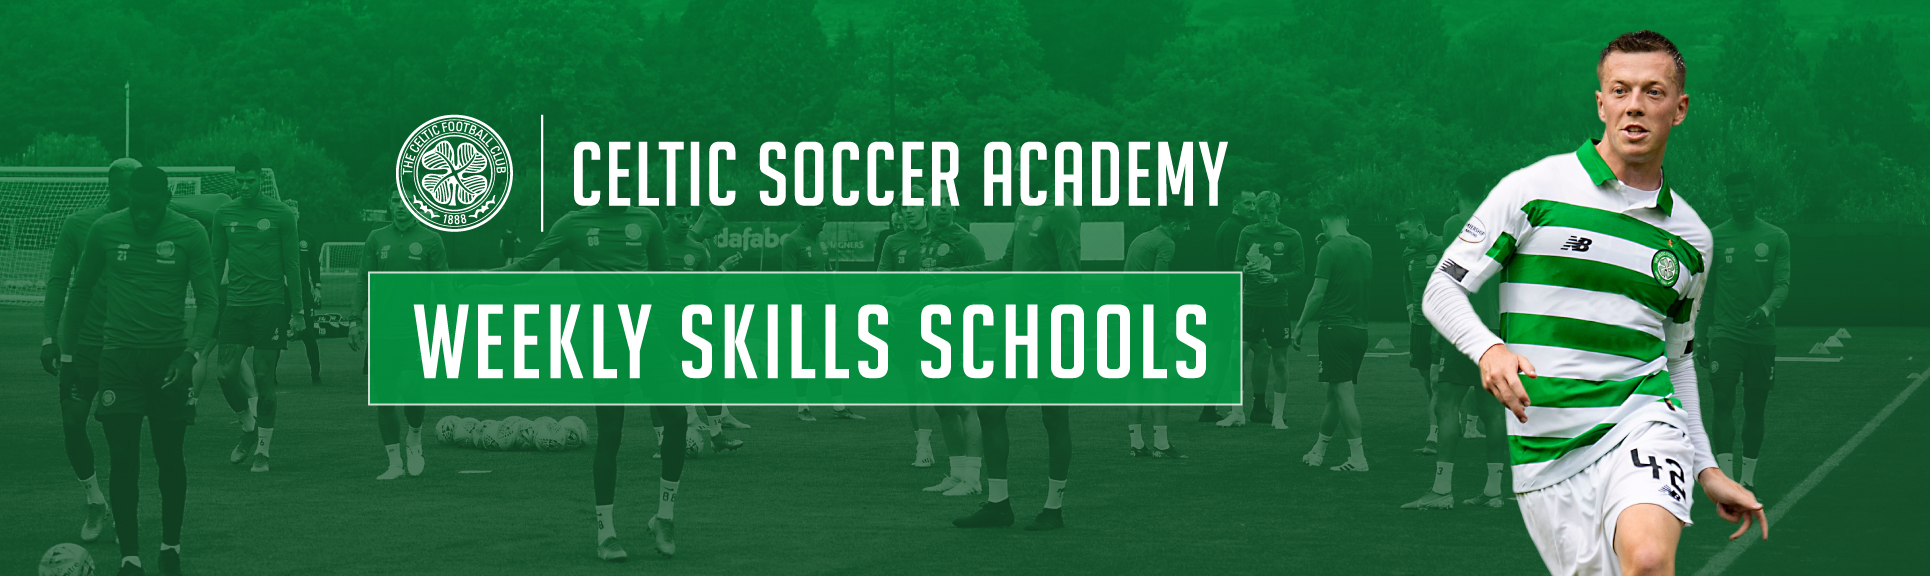 Celtic-Soccer-Academy-Website-1930x576-Banner